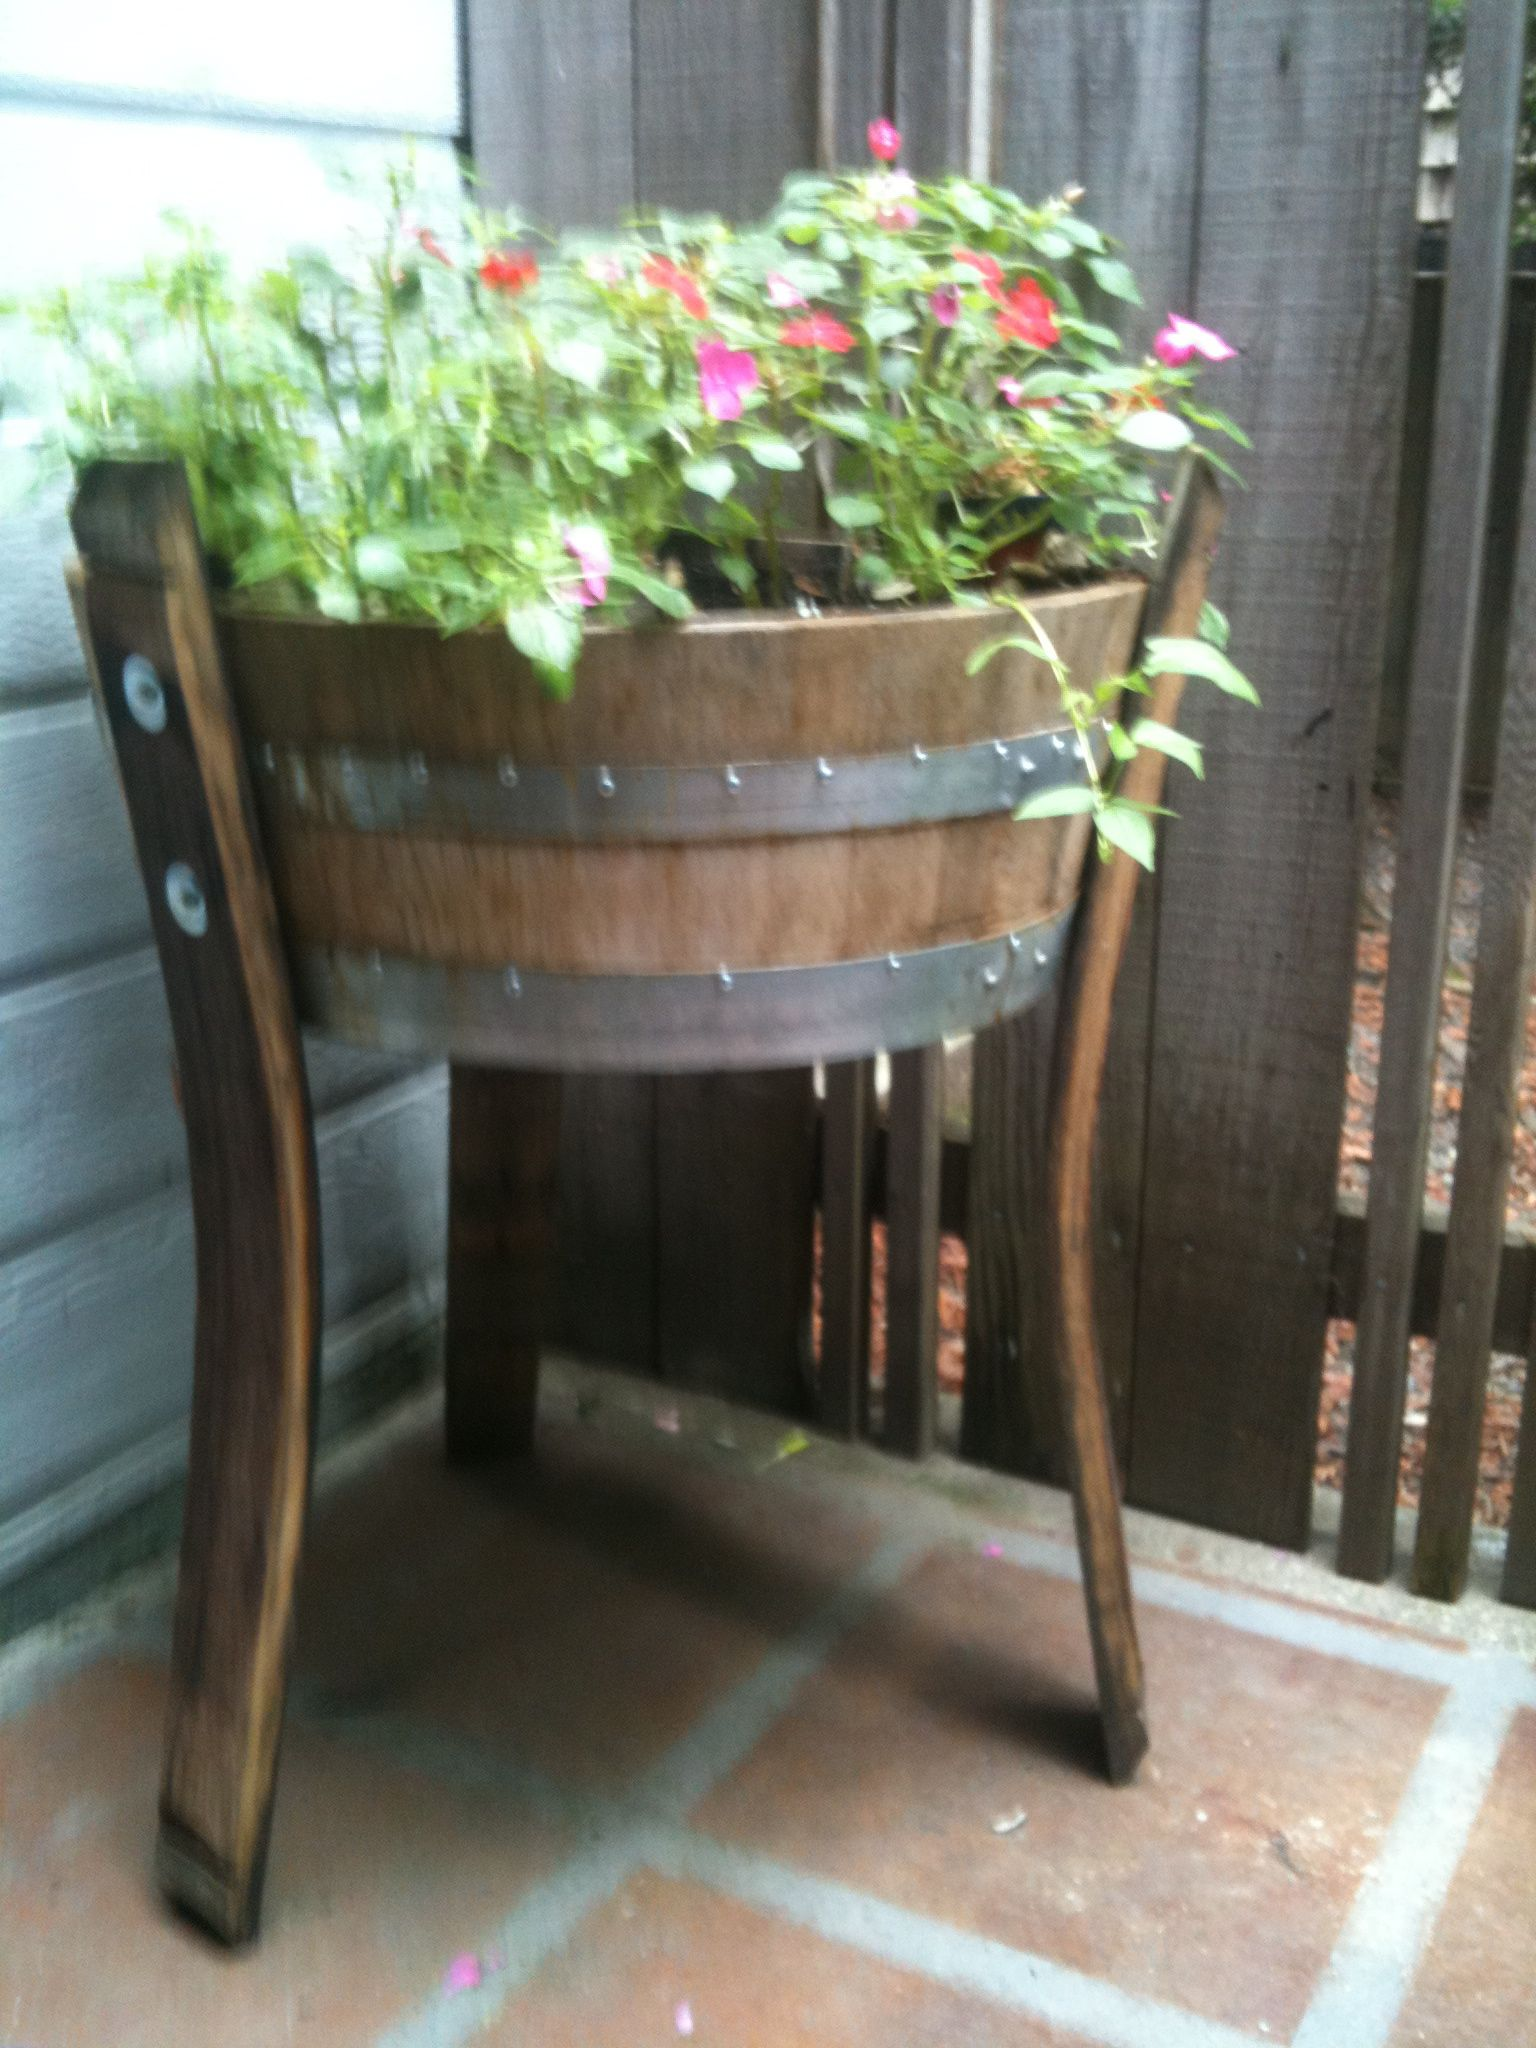 Quarter Barrel Planter With Stave Legs Diy Home Projects